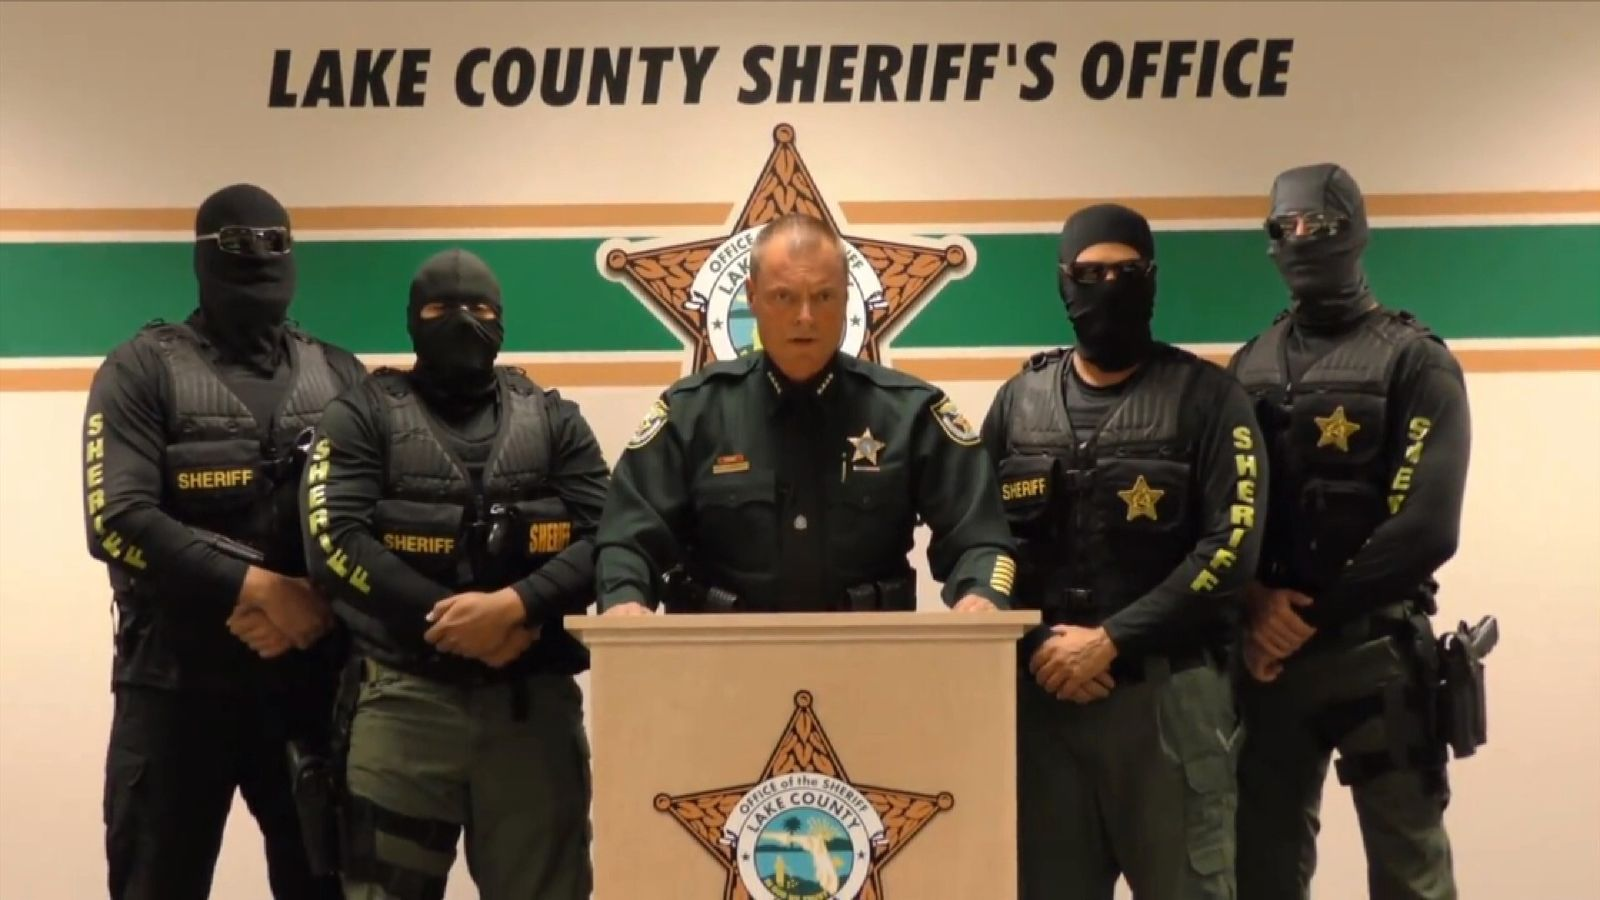 Florida sheriff's video threatening heroin dealers goes viral